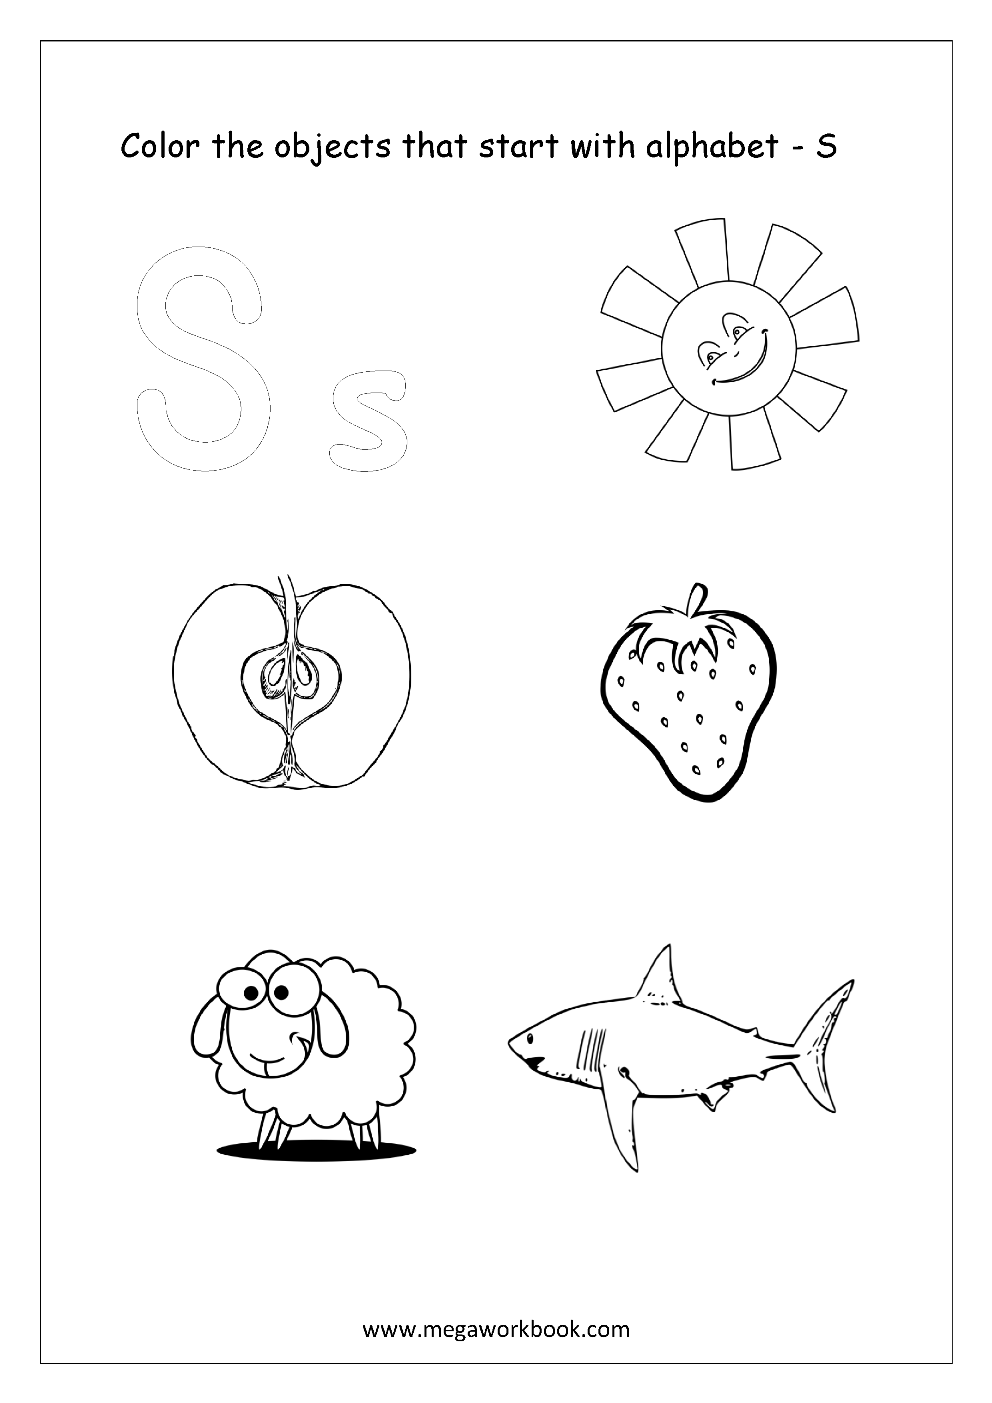 Free english worksheets alphabet picture coloring megaworkbook english worksheet color only the objects starting with alphabet s altavistaventures Images